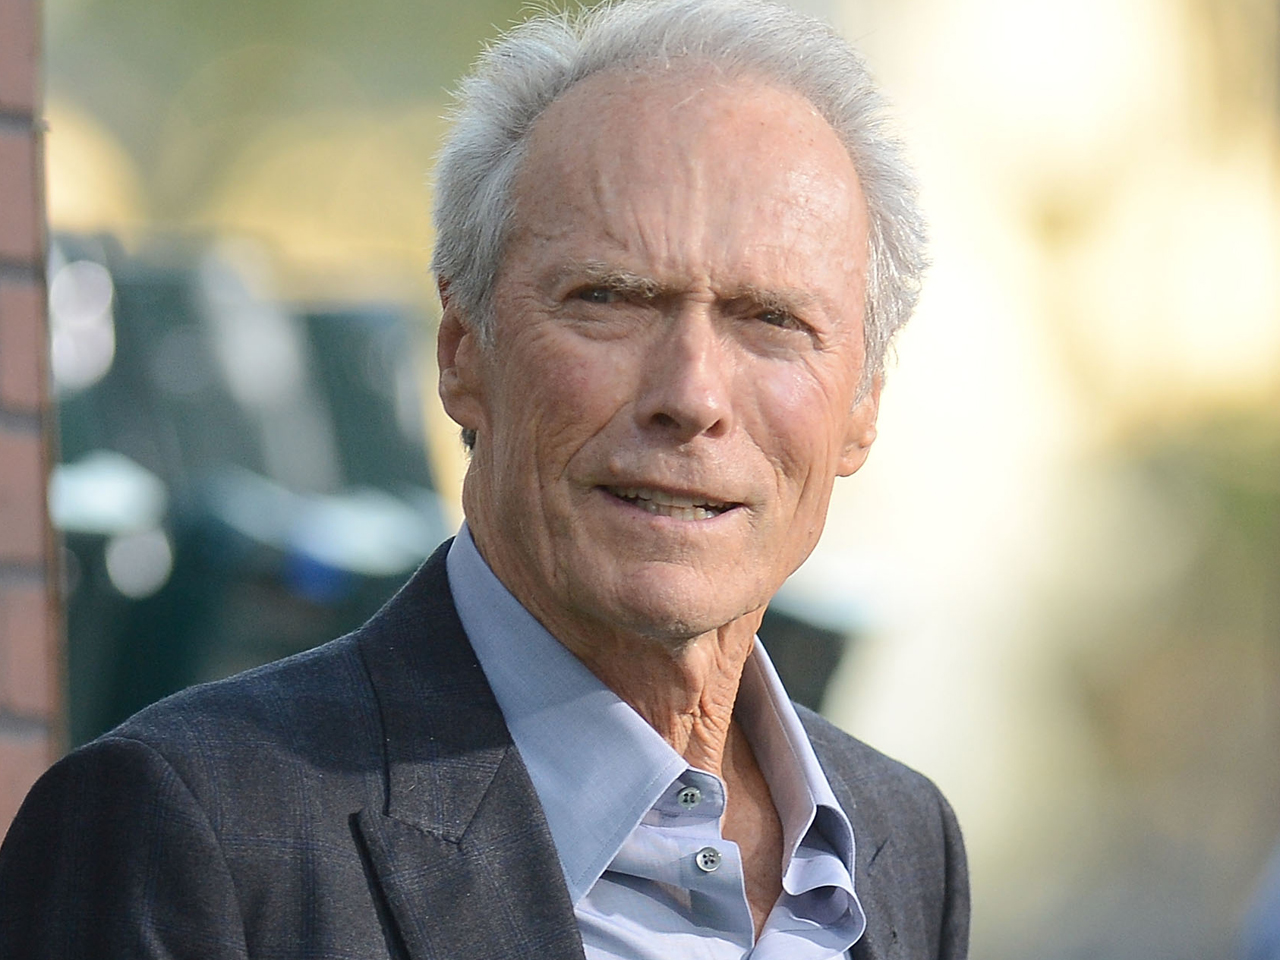 Clint Eastwood Jumps Into Action Saves Choking Man